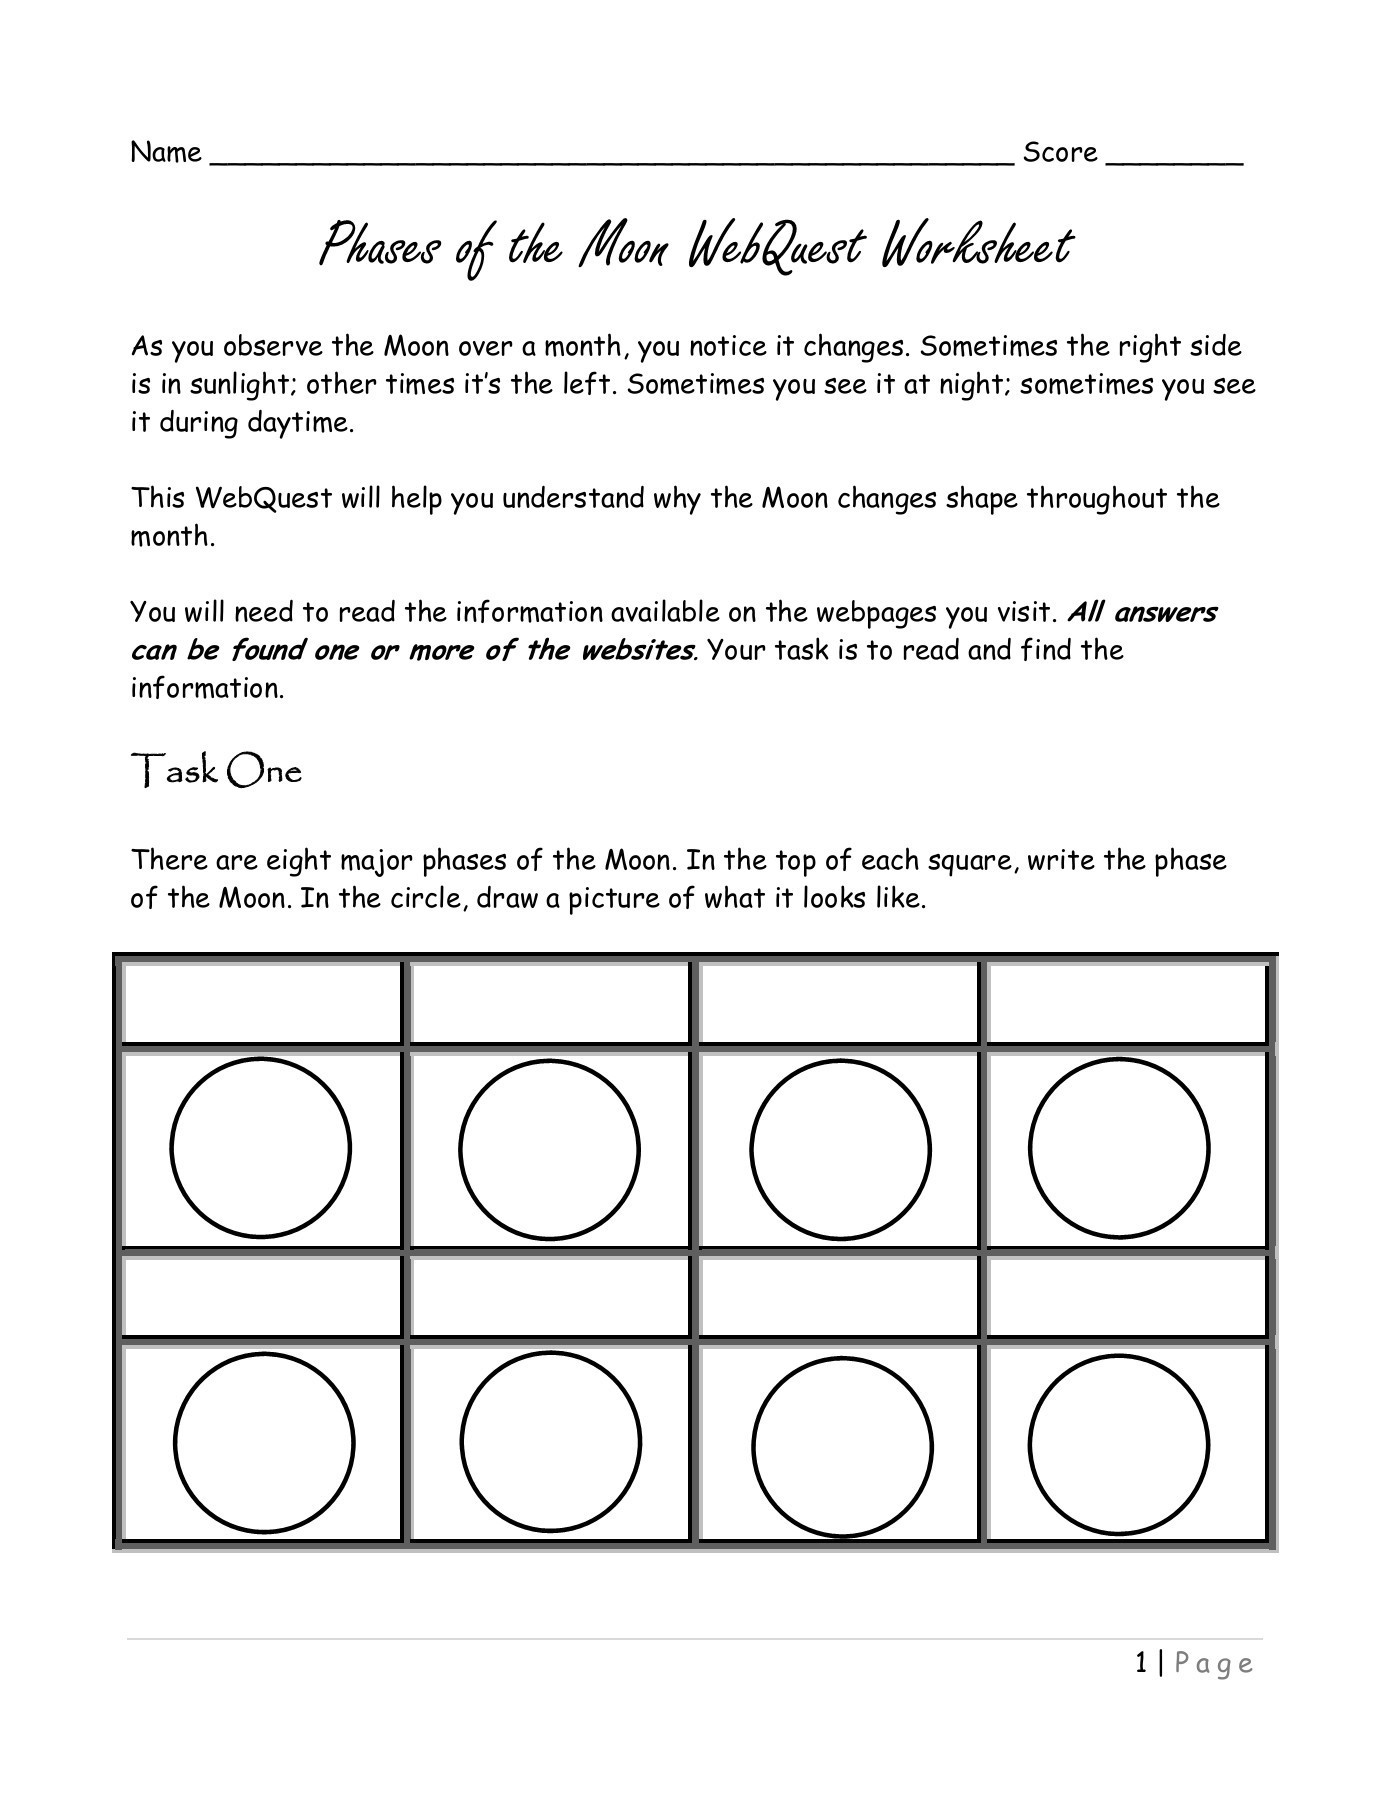 Moon Phases Worksheet Answers Phases Of the Moon Webquest Worksheet Mrscienceut